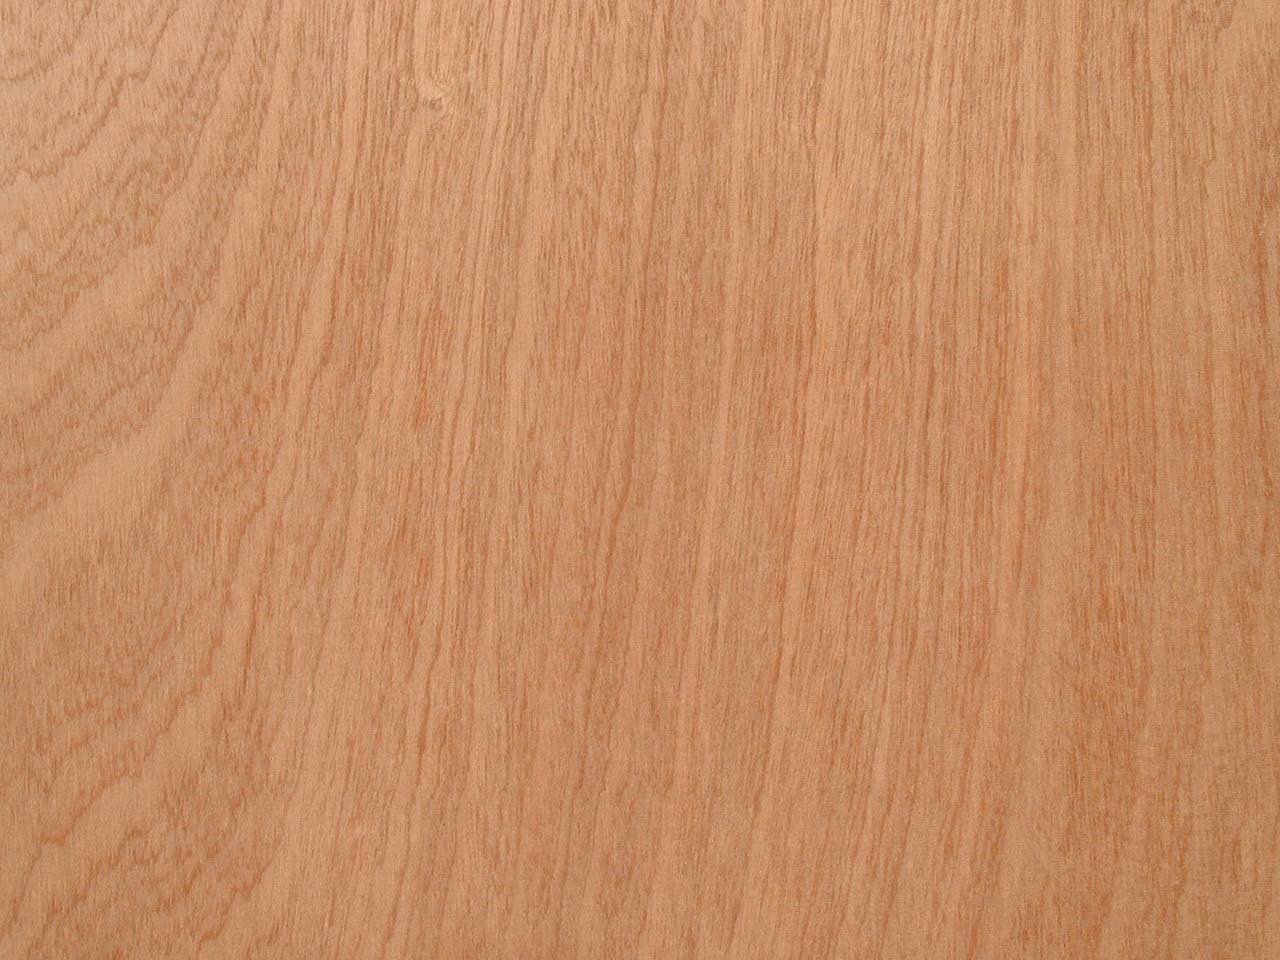 Sapele a b bs1088 lloyds approved for Marine plywood vs exterior plywood